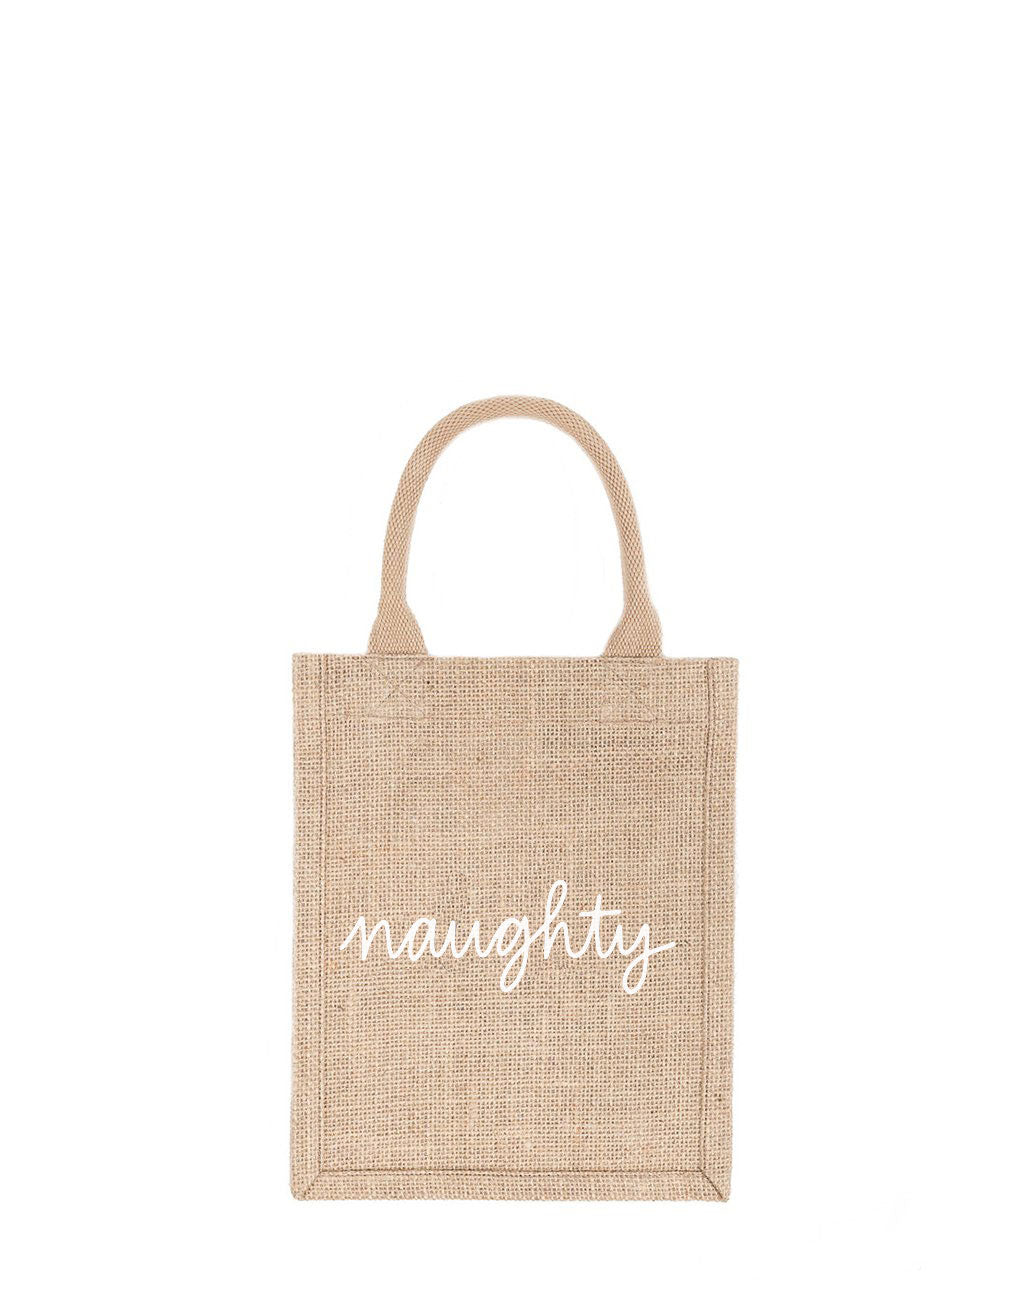 Small Naughty Reusable Gift Tote In White Font | The Little Market